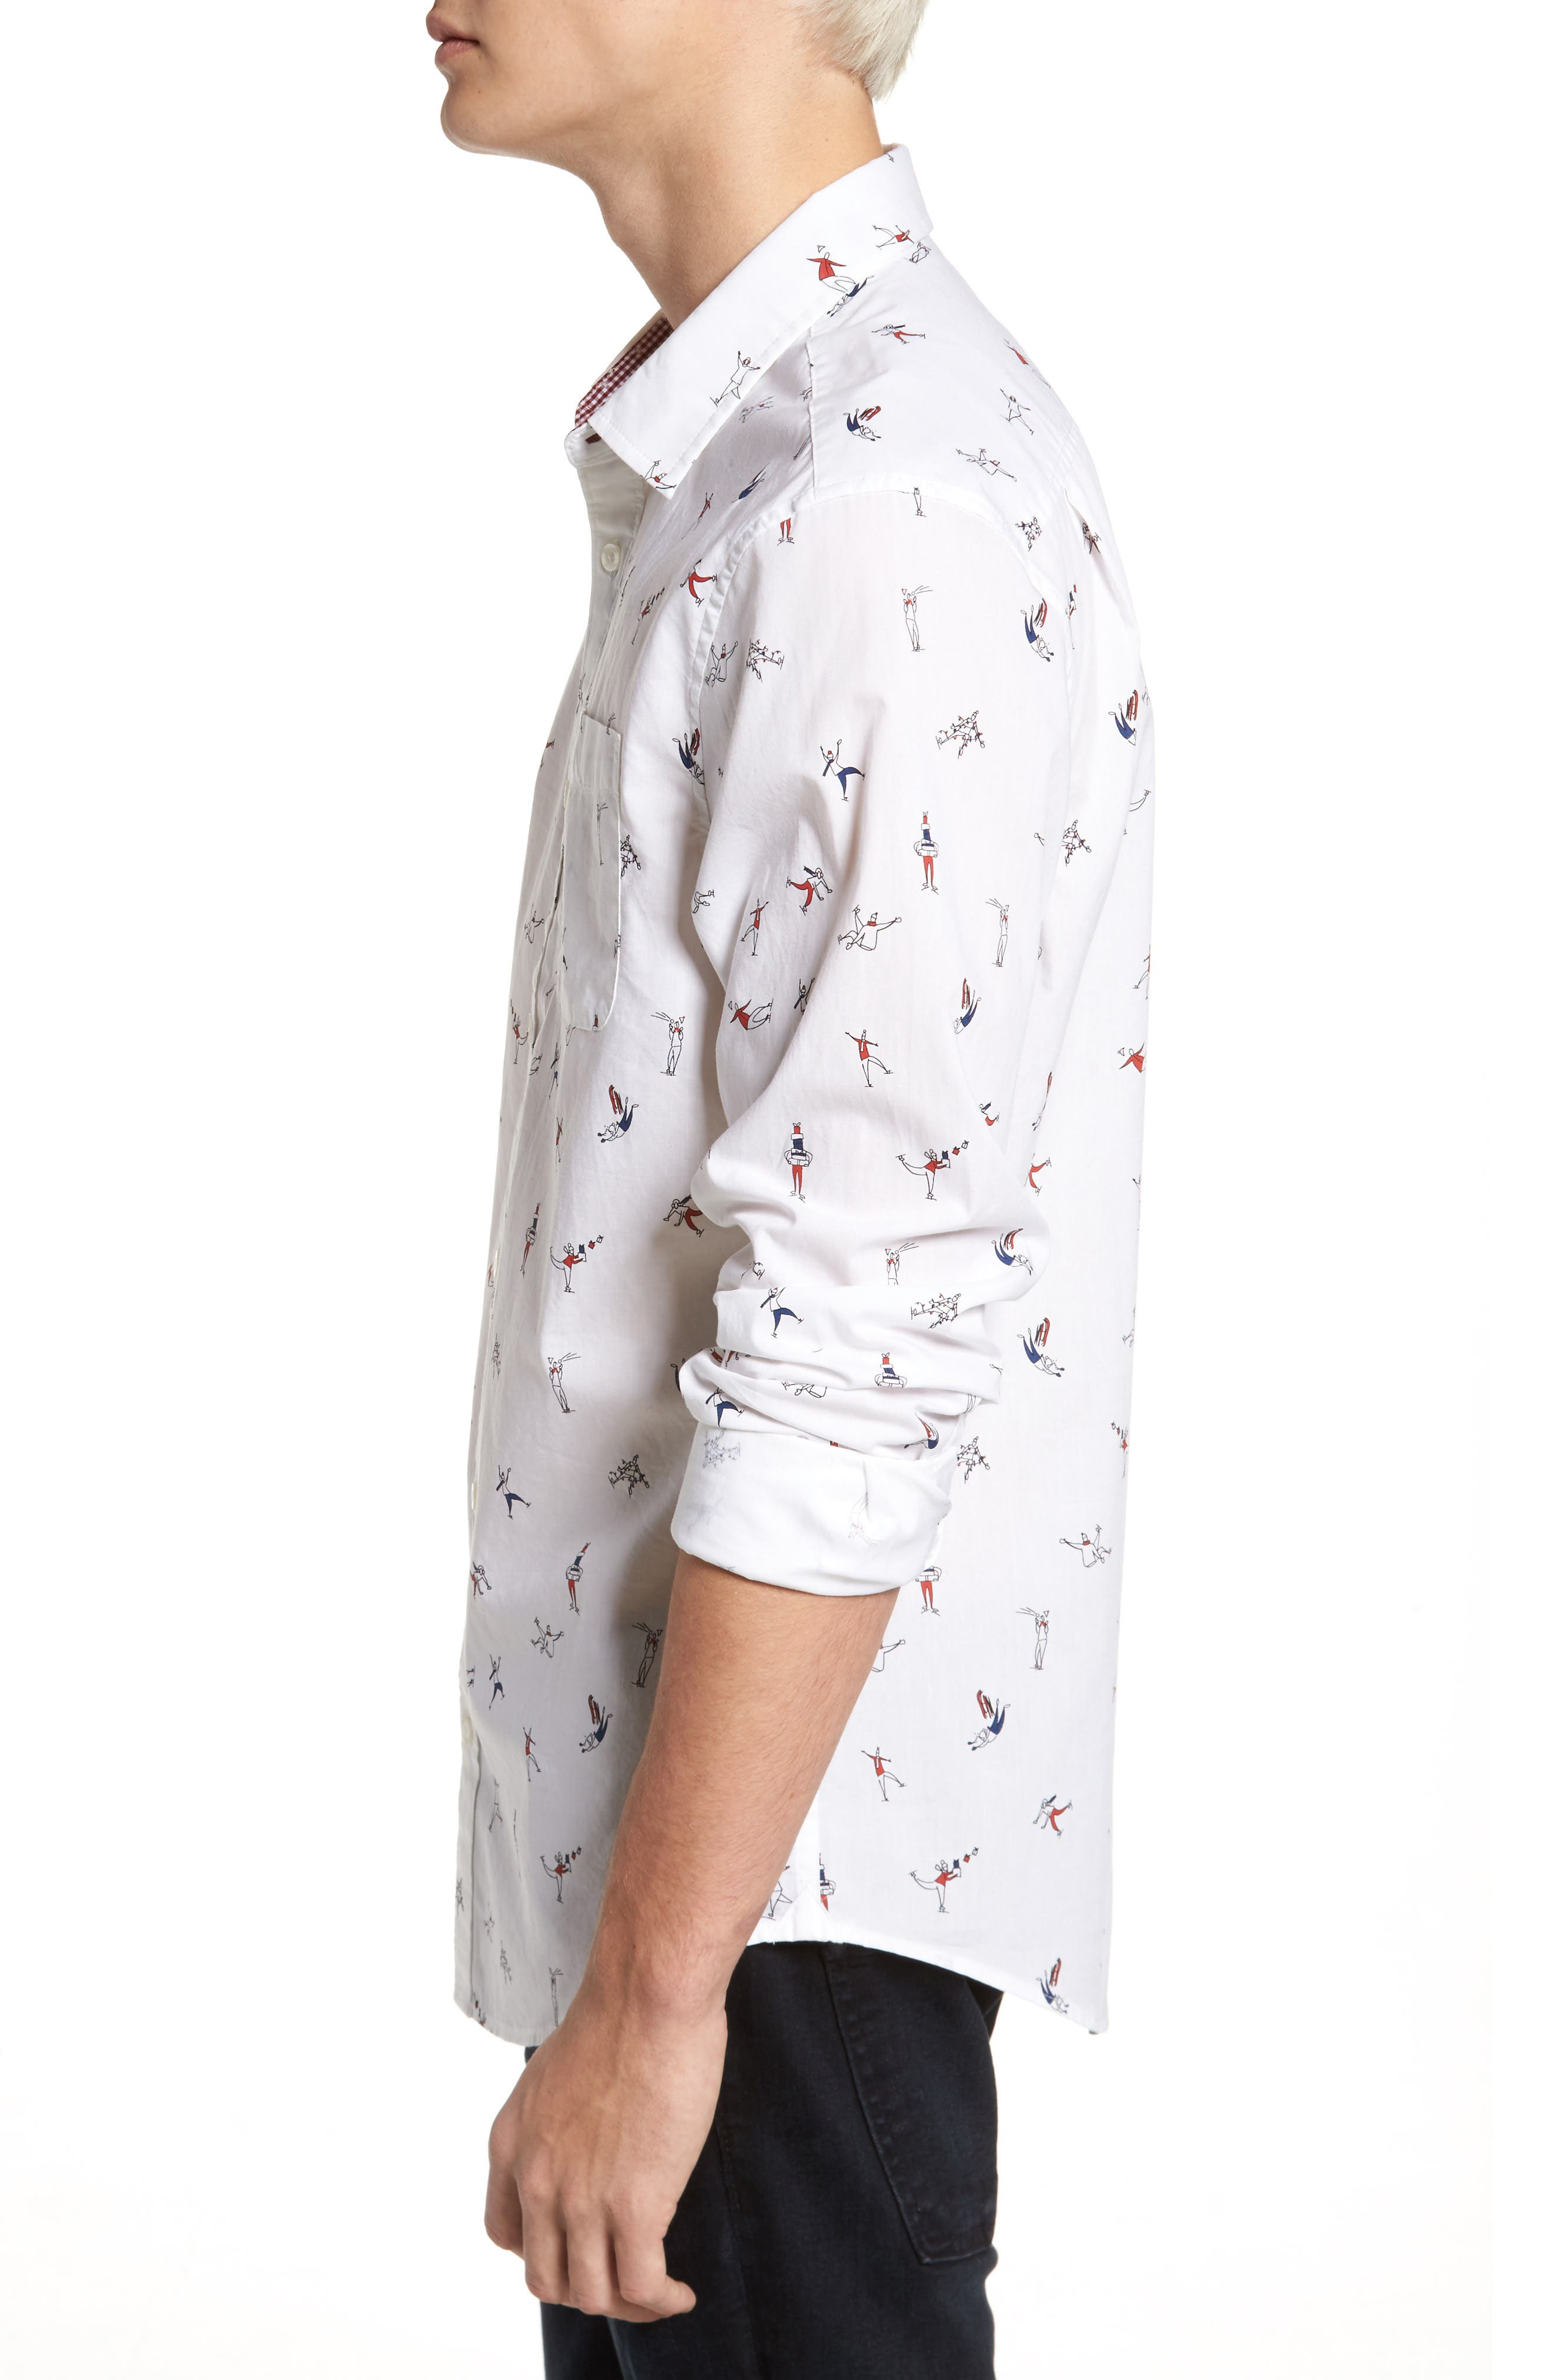 Clumsy Skaters Poplin Shirt,                             Alternate thumbnail 3, color,                             Bright White